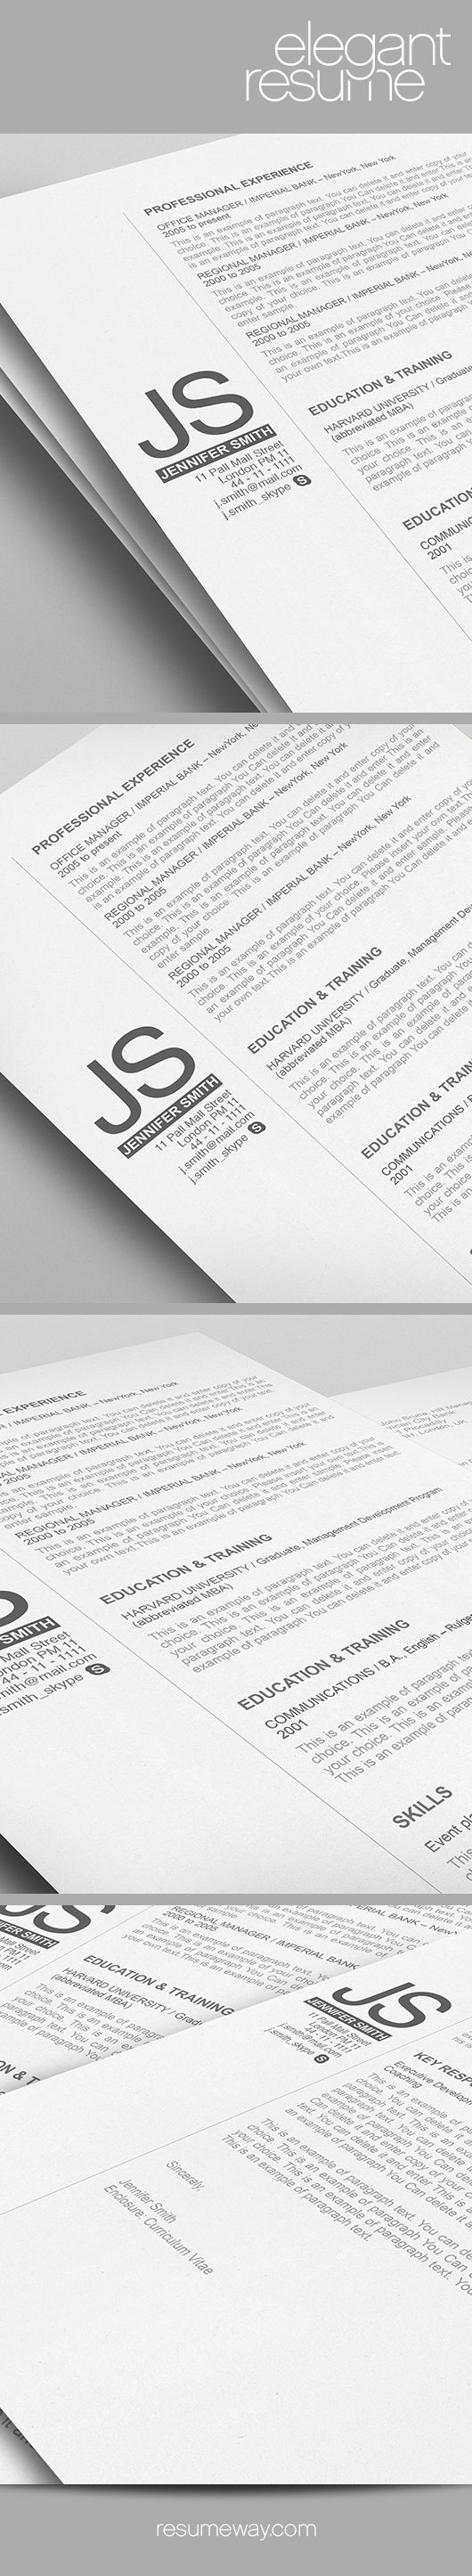 Elegant Resume Template - 110540 - Premium line of Resume & Cover ...